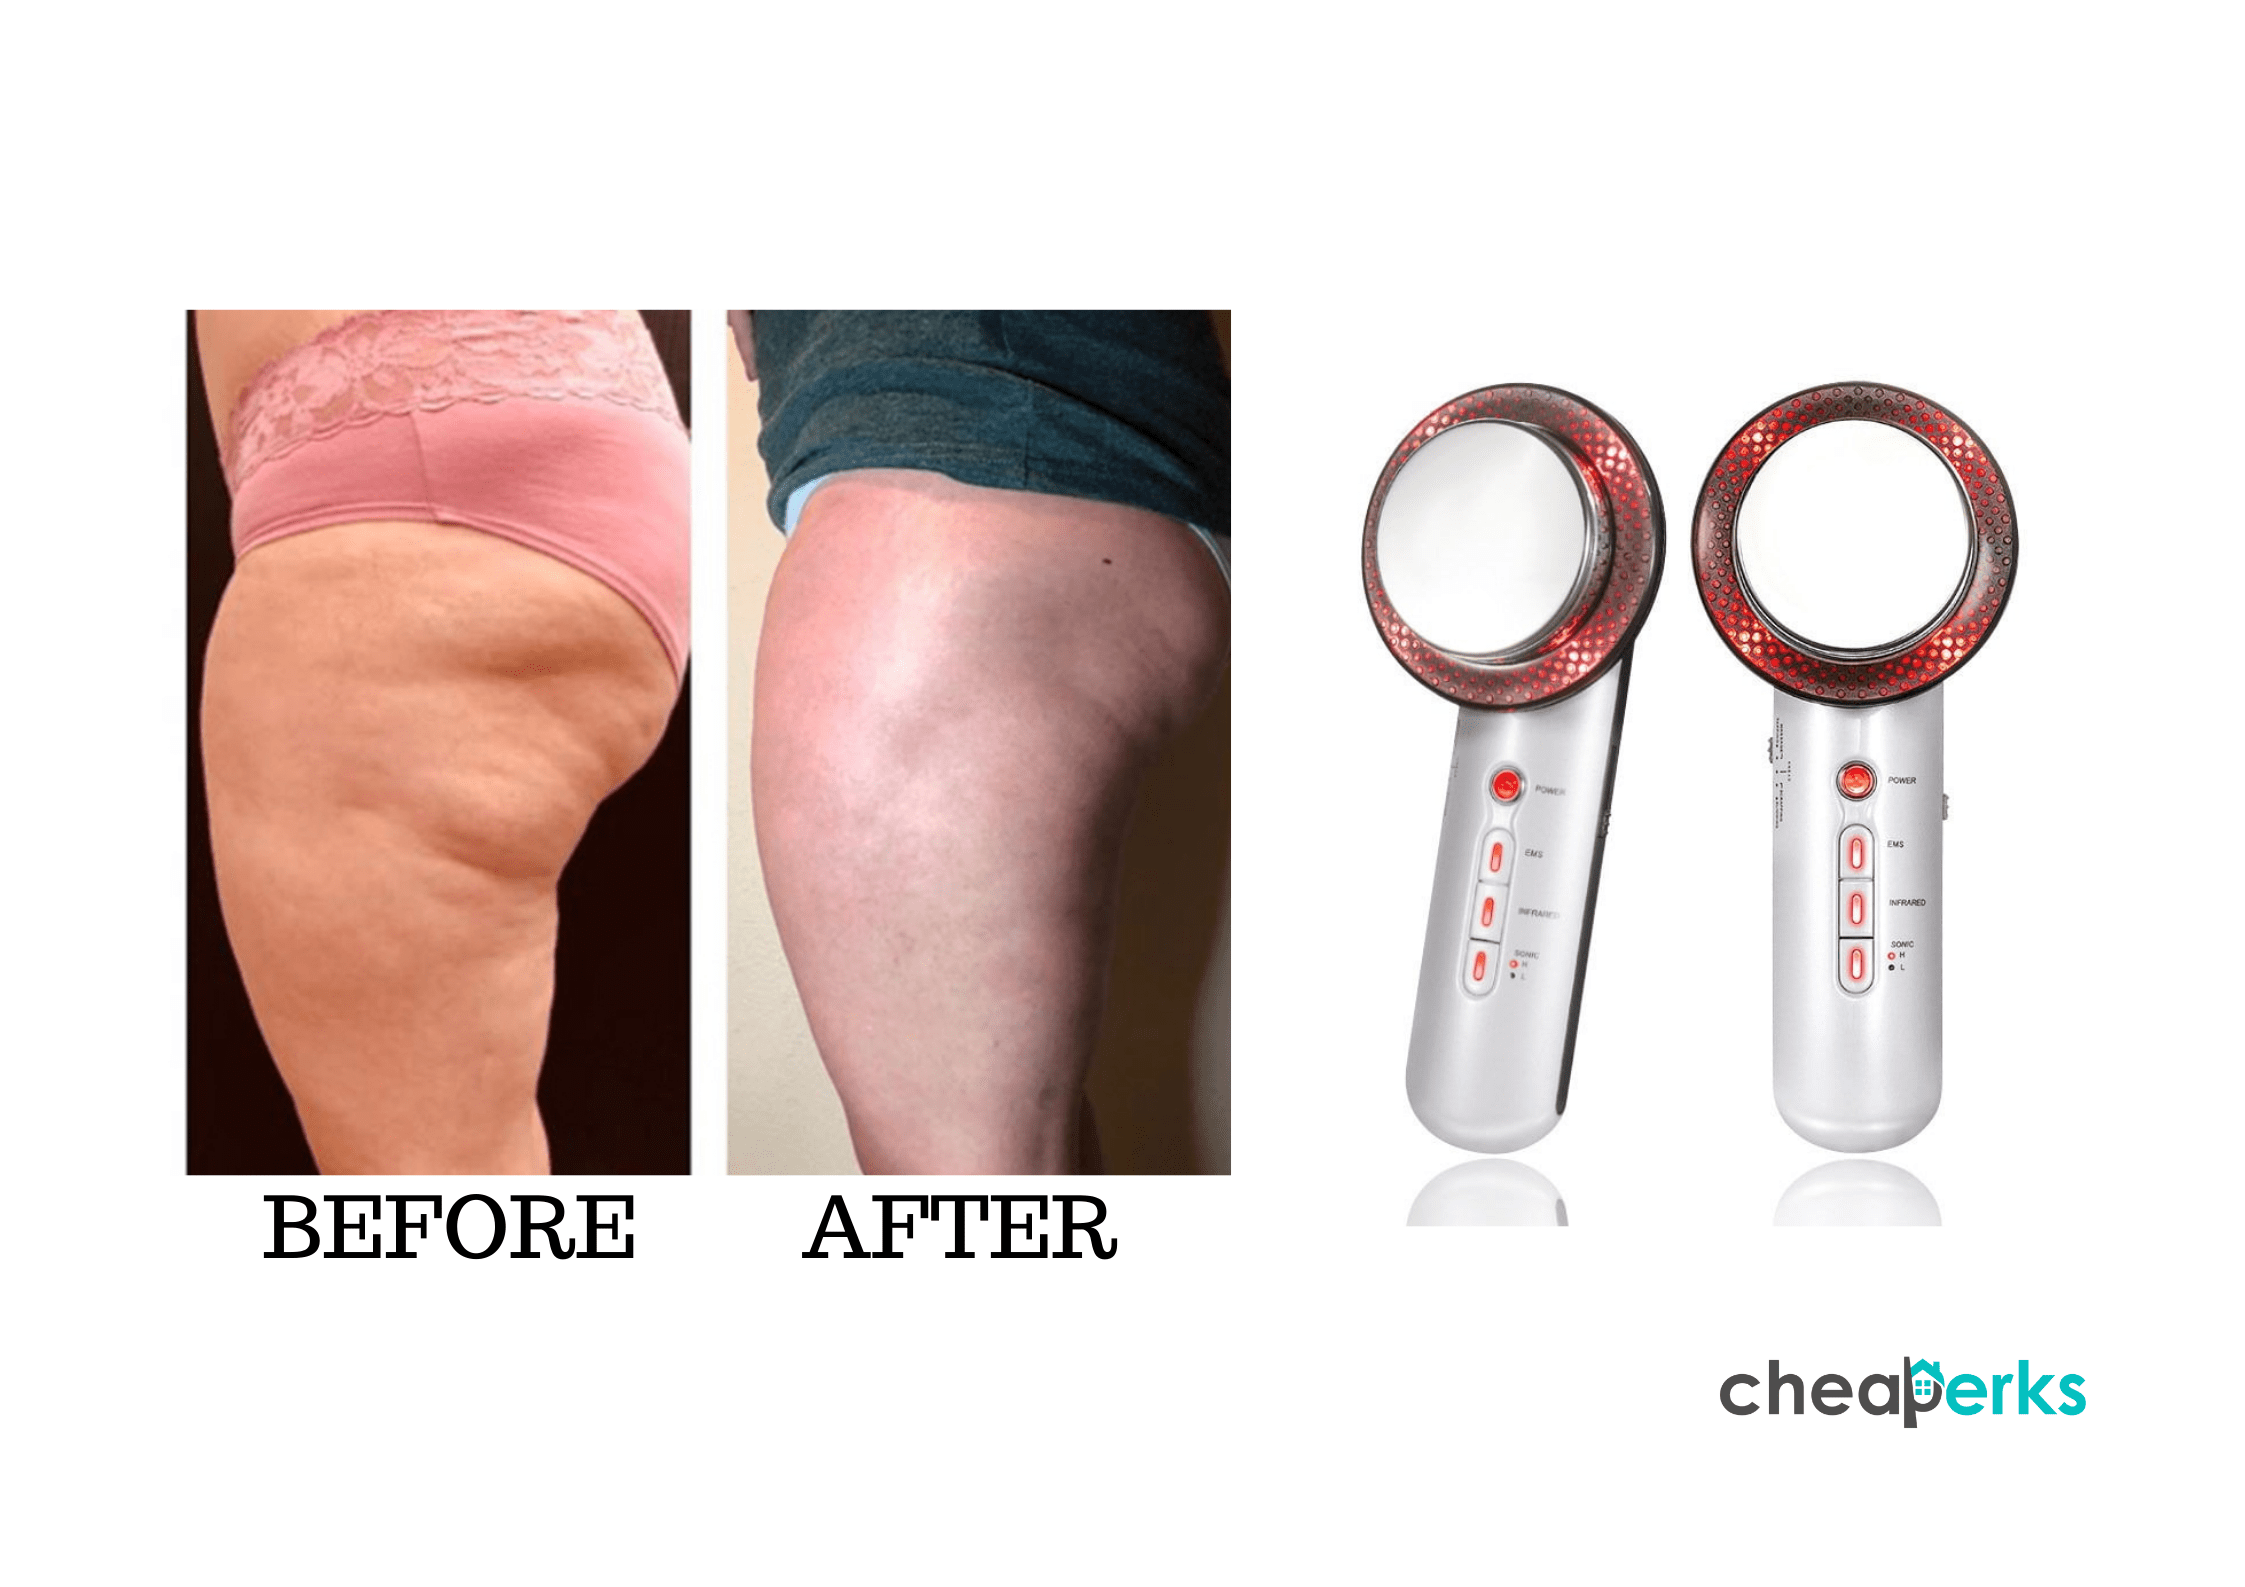 ultrasonic cellulite remover before and after